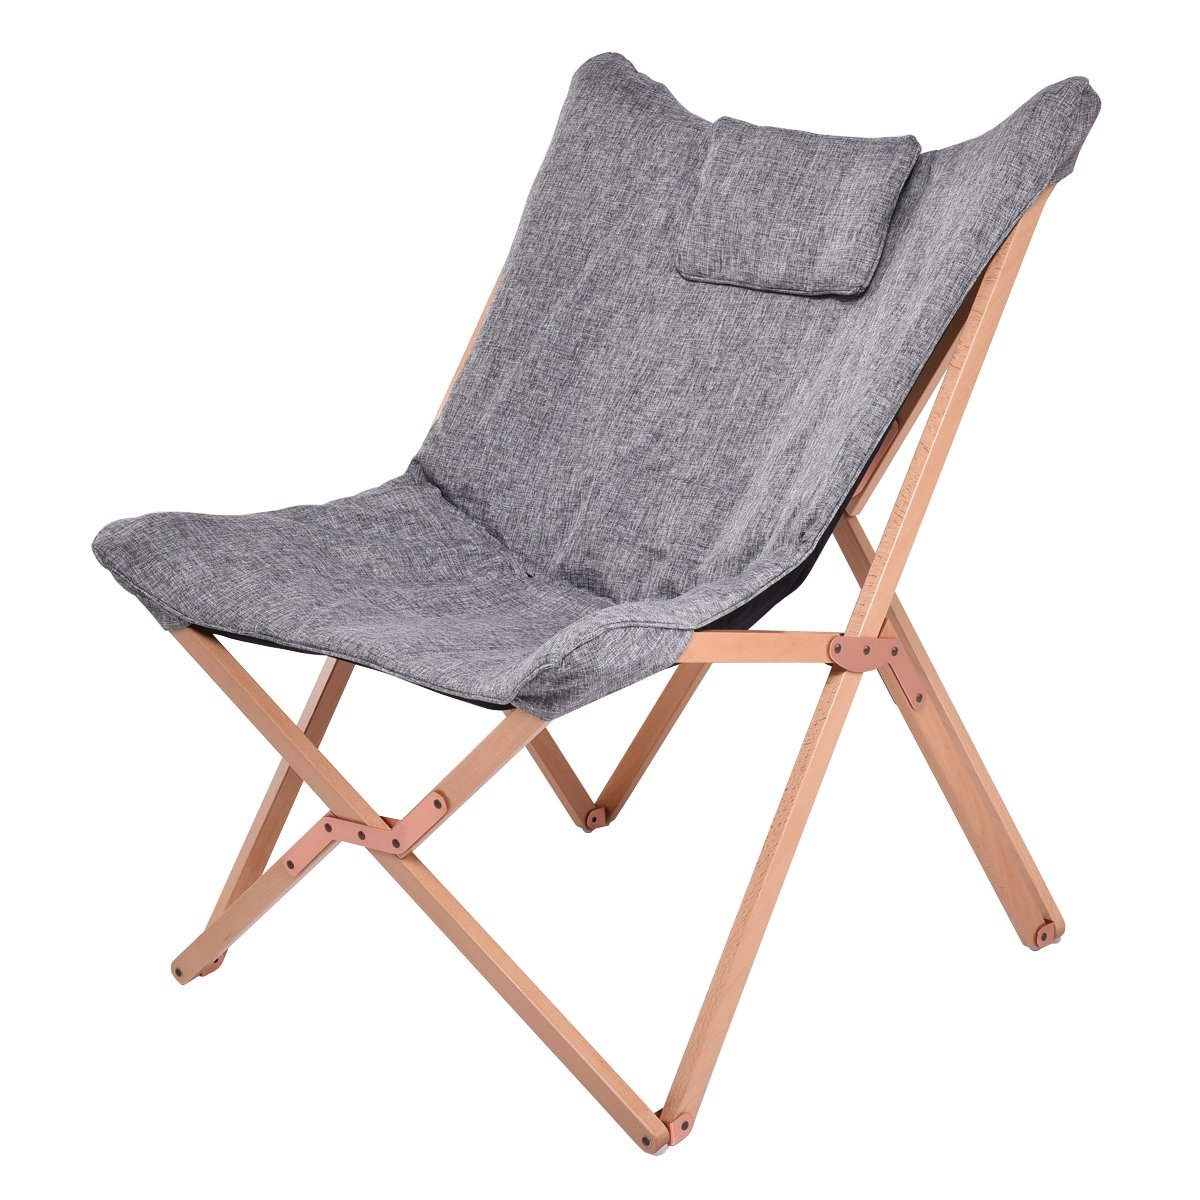 Giantex Folding Butterfly Chair Seat Wood Frame Home Office Furniture Portable (Gray)